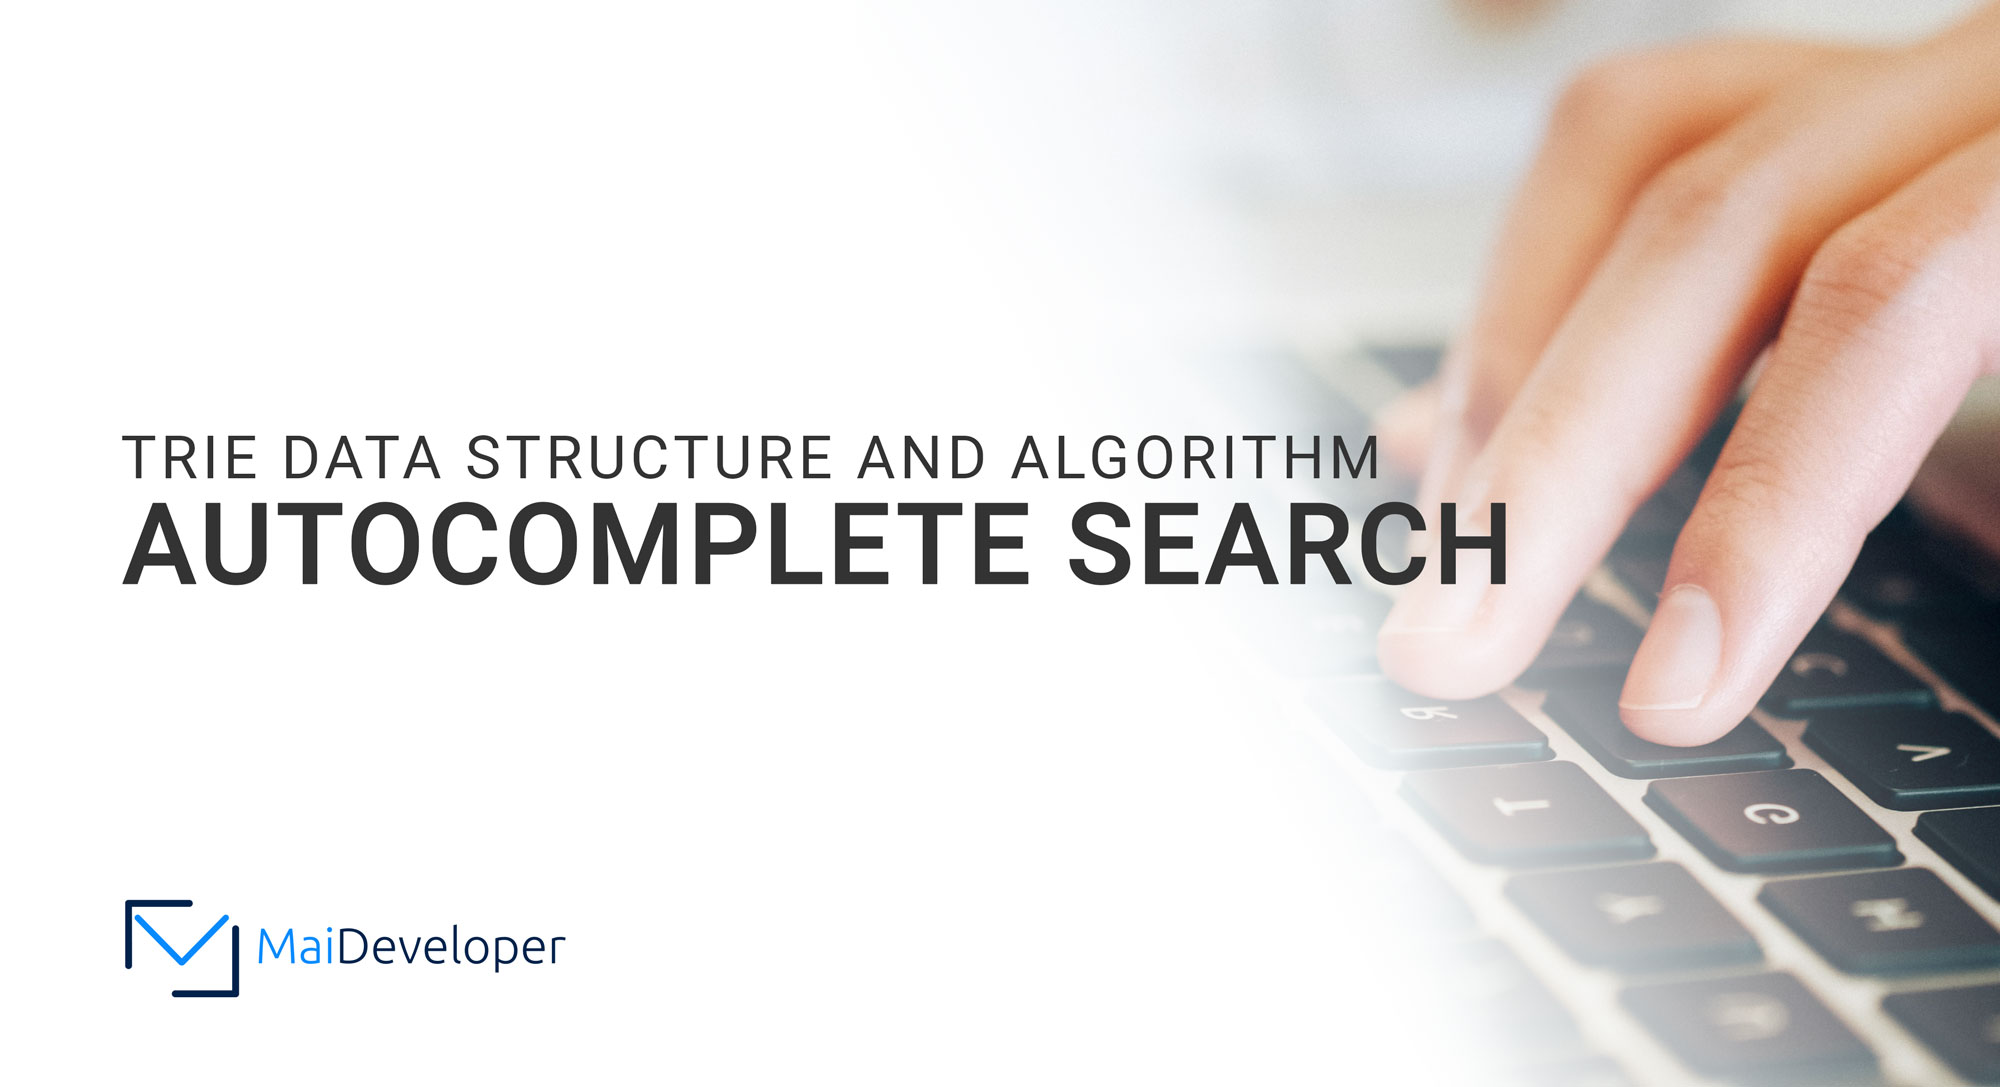 Autocomplete / Suggestion / Typeahead Search using Trie Data Structure and Algorithm